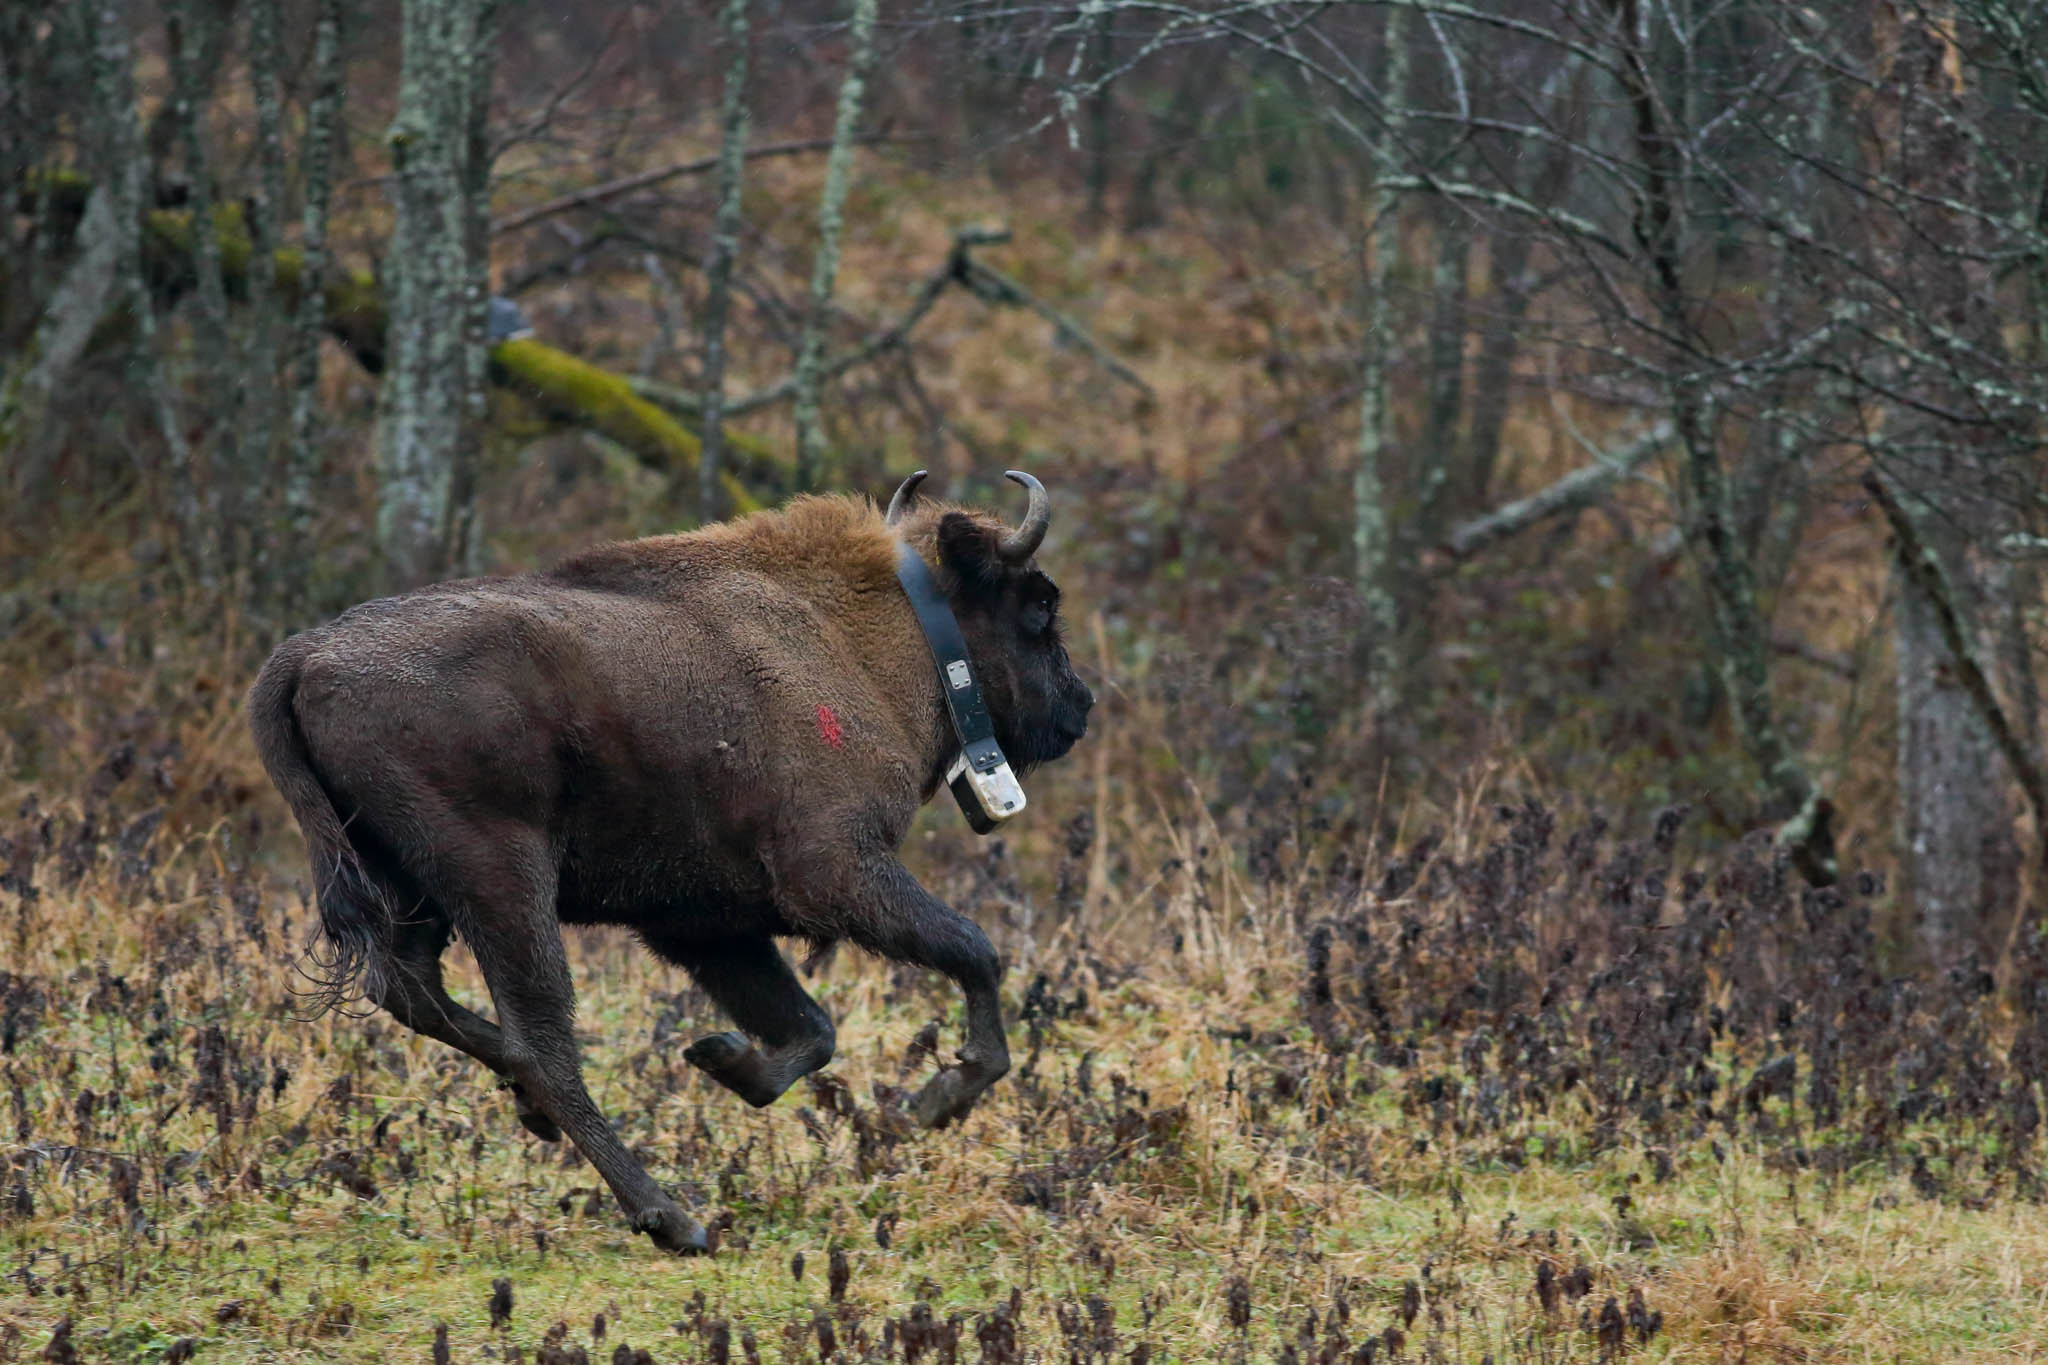 Bison release event in the Eastern Carpathians rewilding area, 19 December 2014